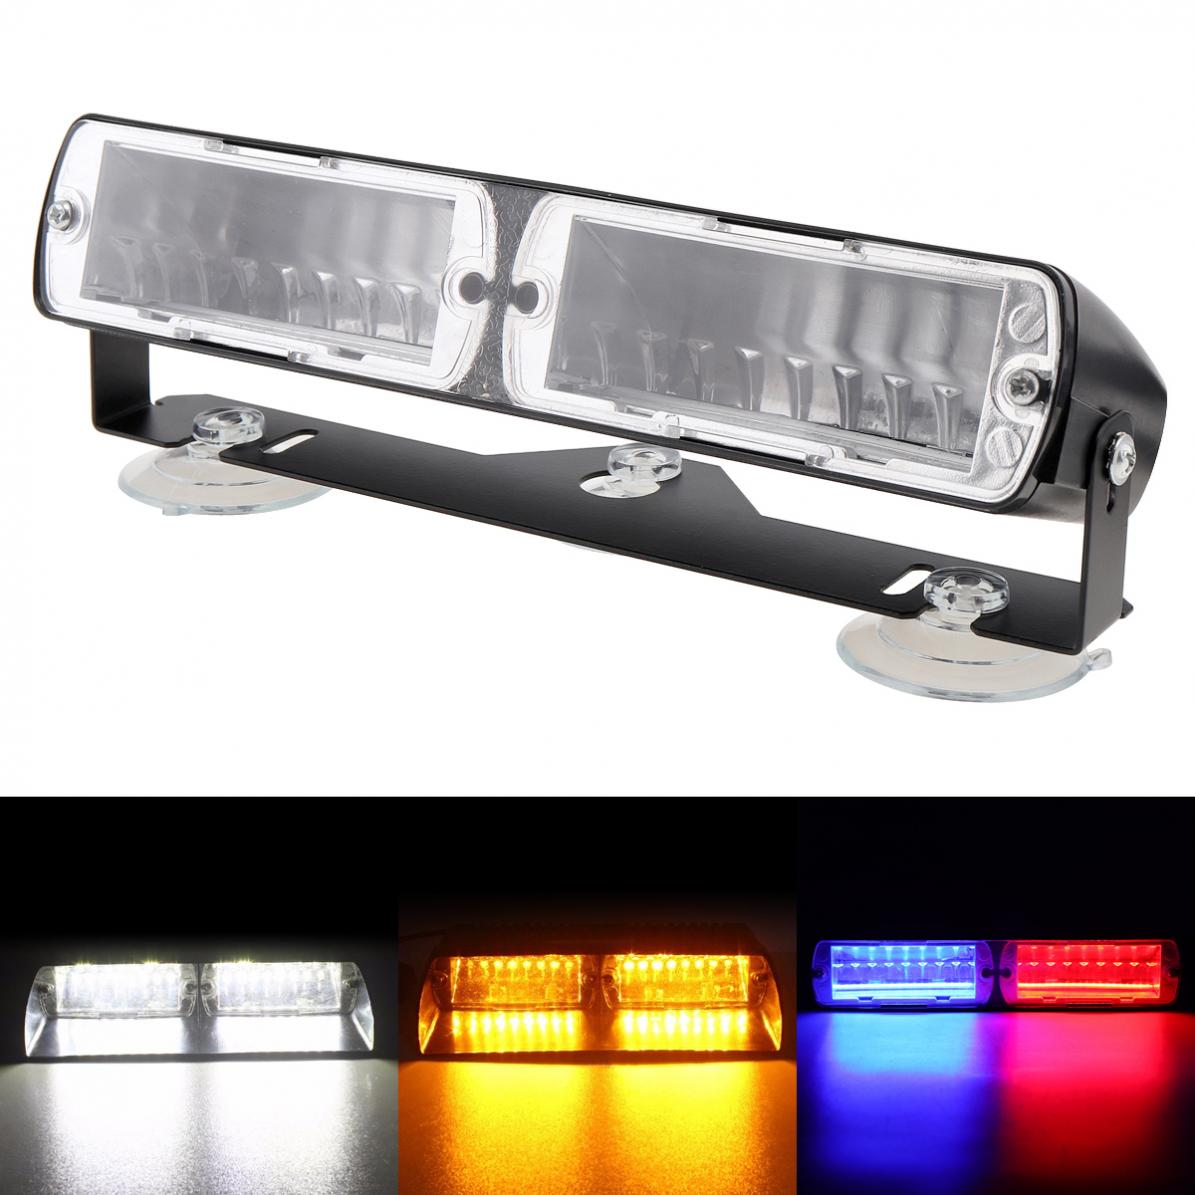 16LED 48W Viper S2 Super Bright Signal Flashing Led Warning Light Police Strobe Flash Emergency Lights